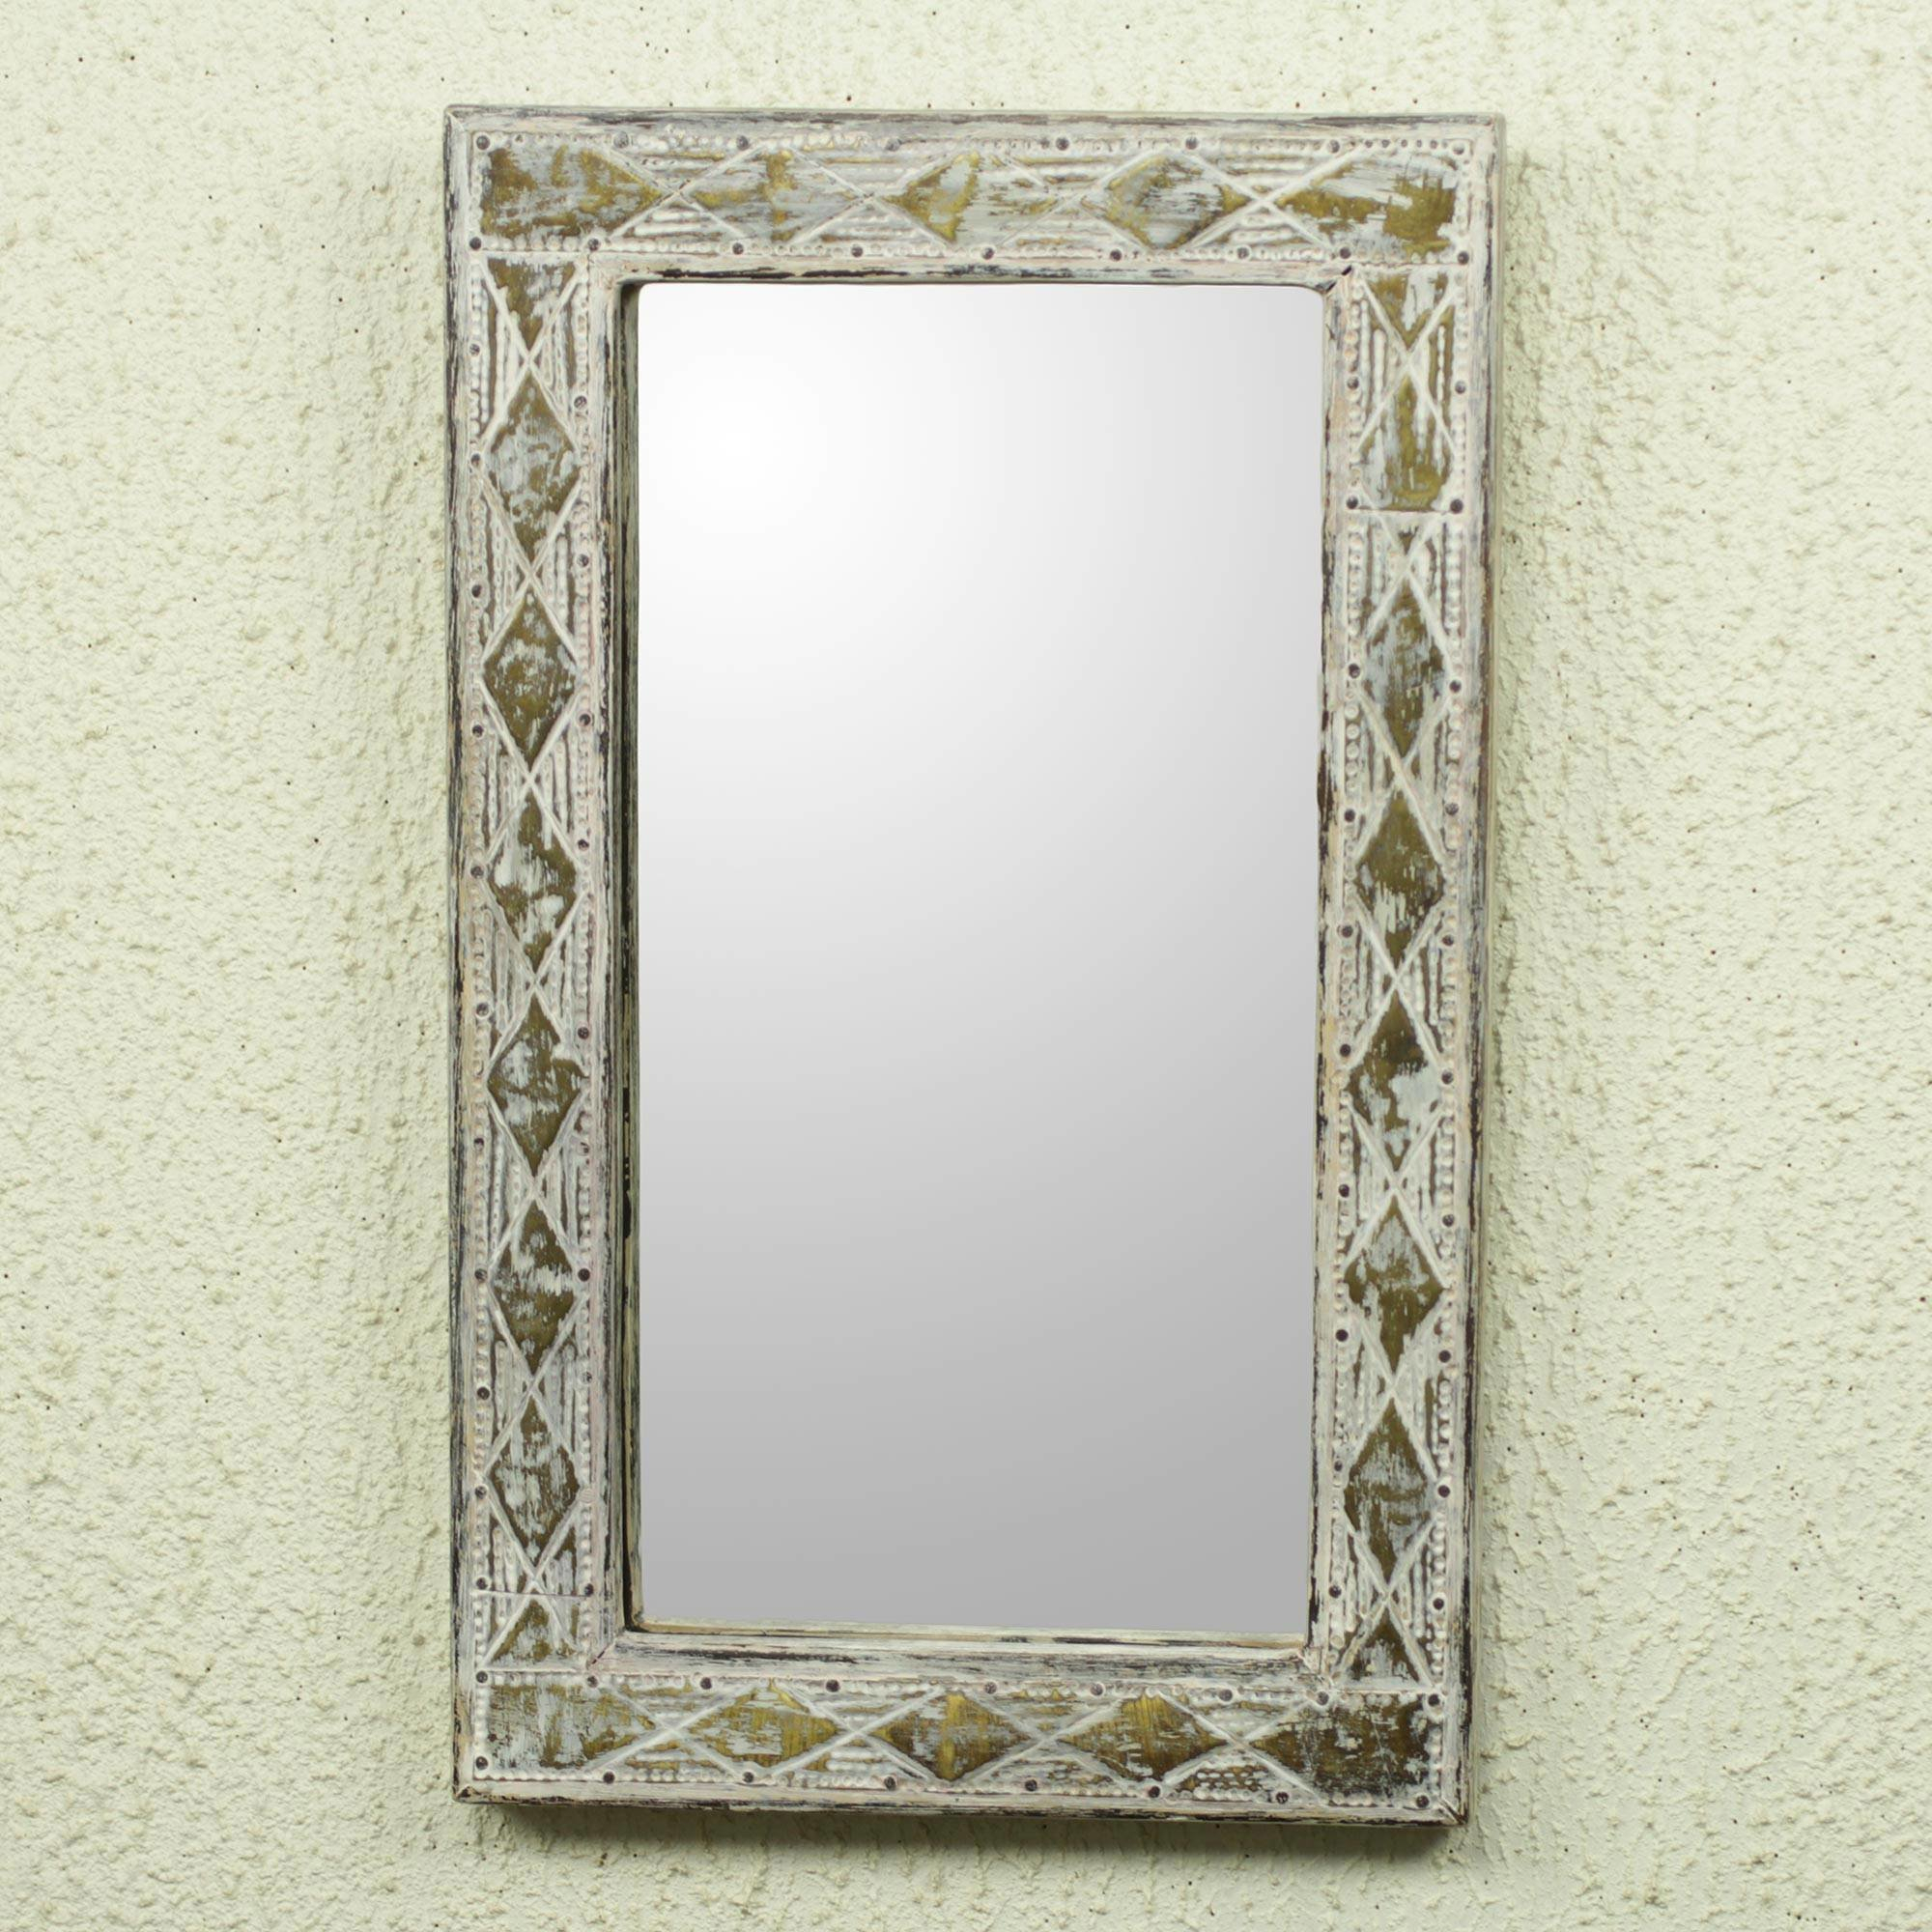 Lizabeta Antique Wood And Brass Wall Mirror With Regard To Stamey Wall Mirrors (Image 13 of 20)